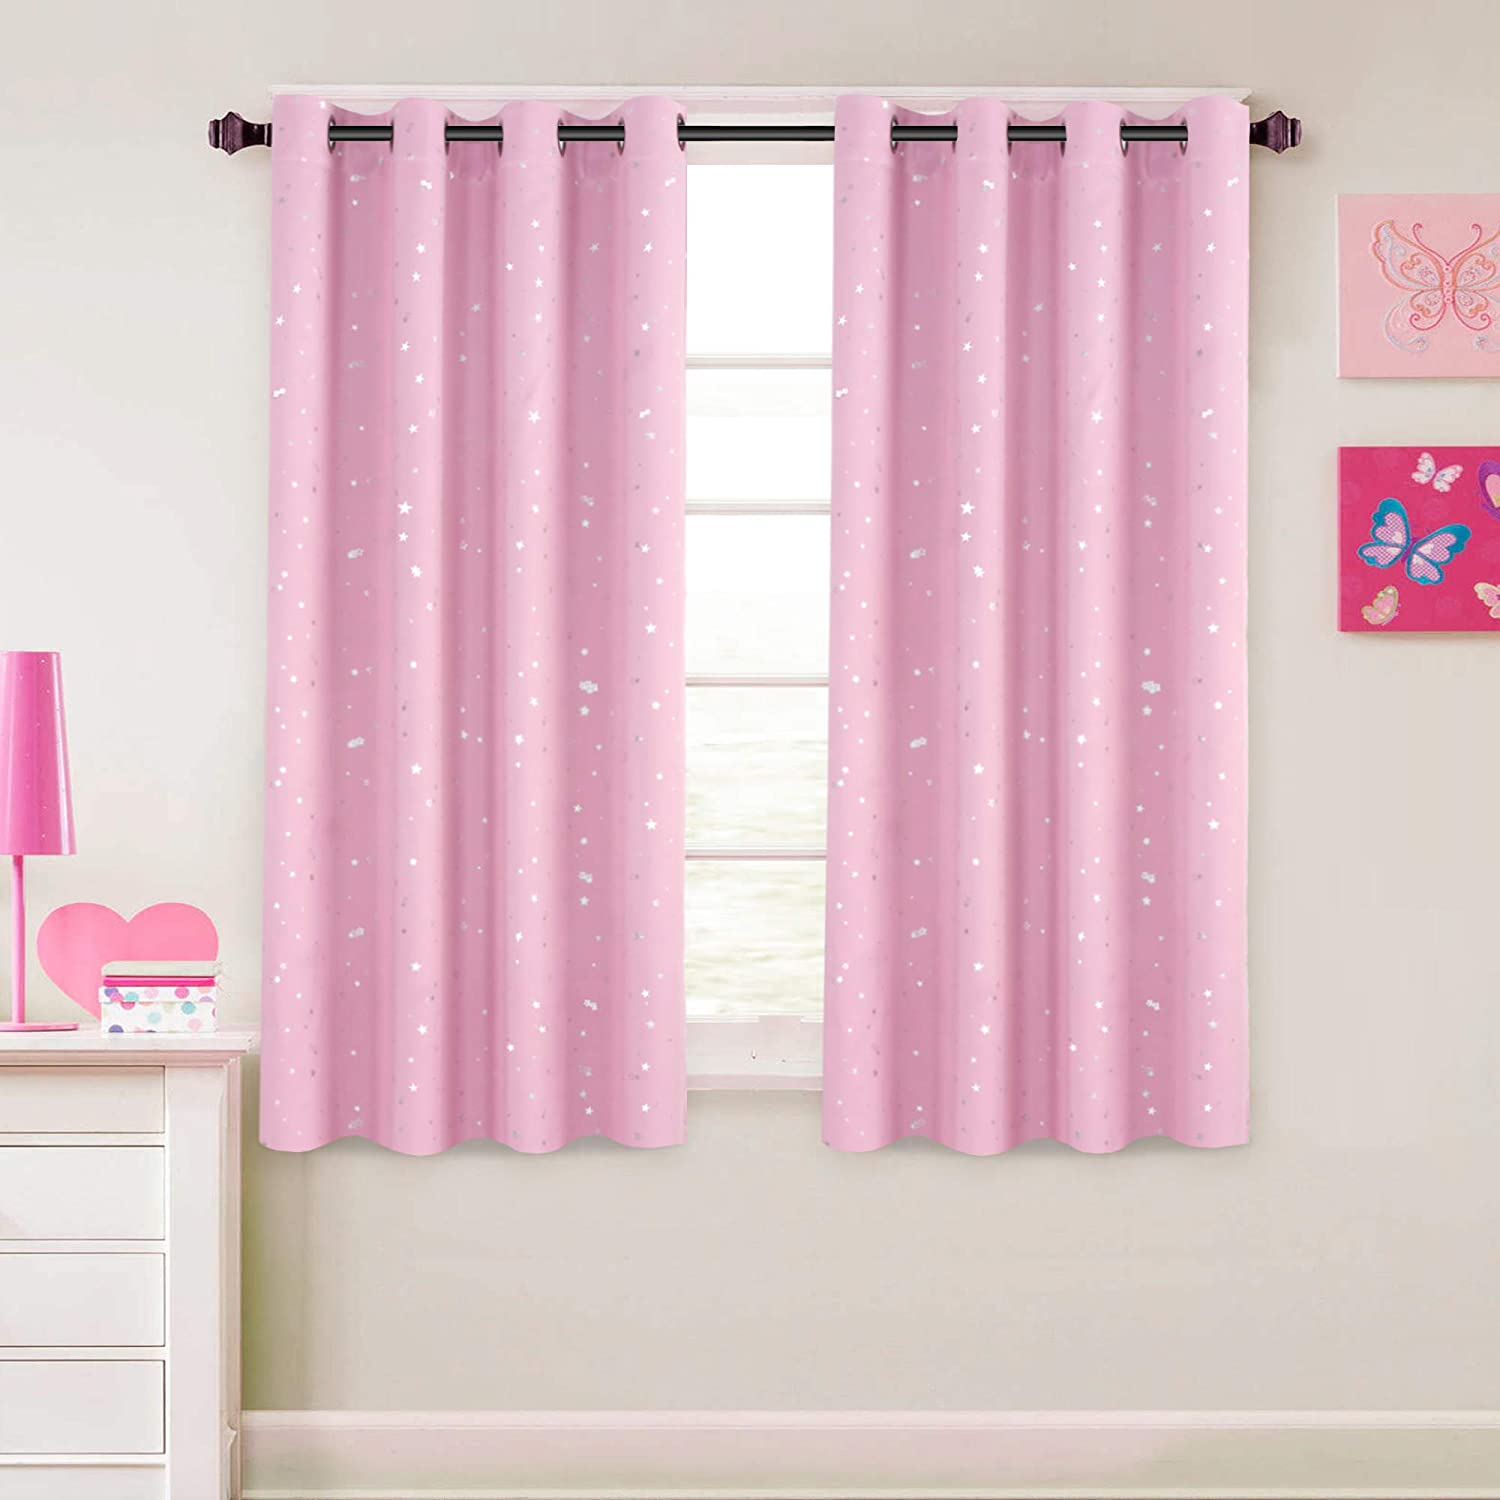 52 W x 63 L Pink 1 Panel Grommet Top H.VERSAILTEX Blackout Curtains Kids Room for Boys Girls Thermal Insulated Twinkle Silver Stars Pattern Curtain Drapes